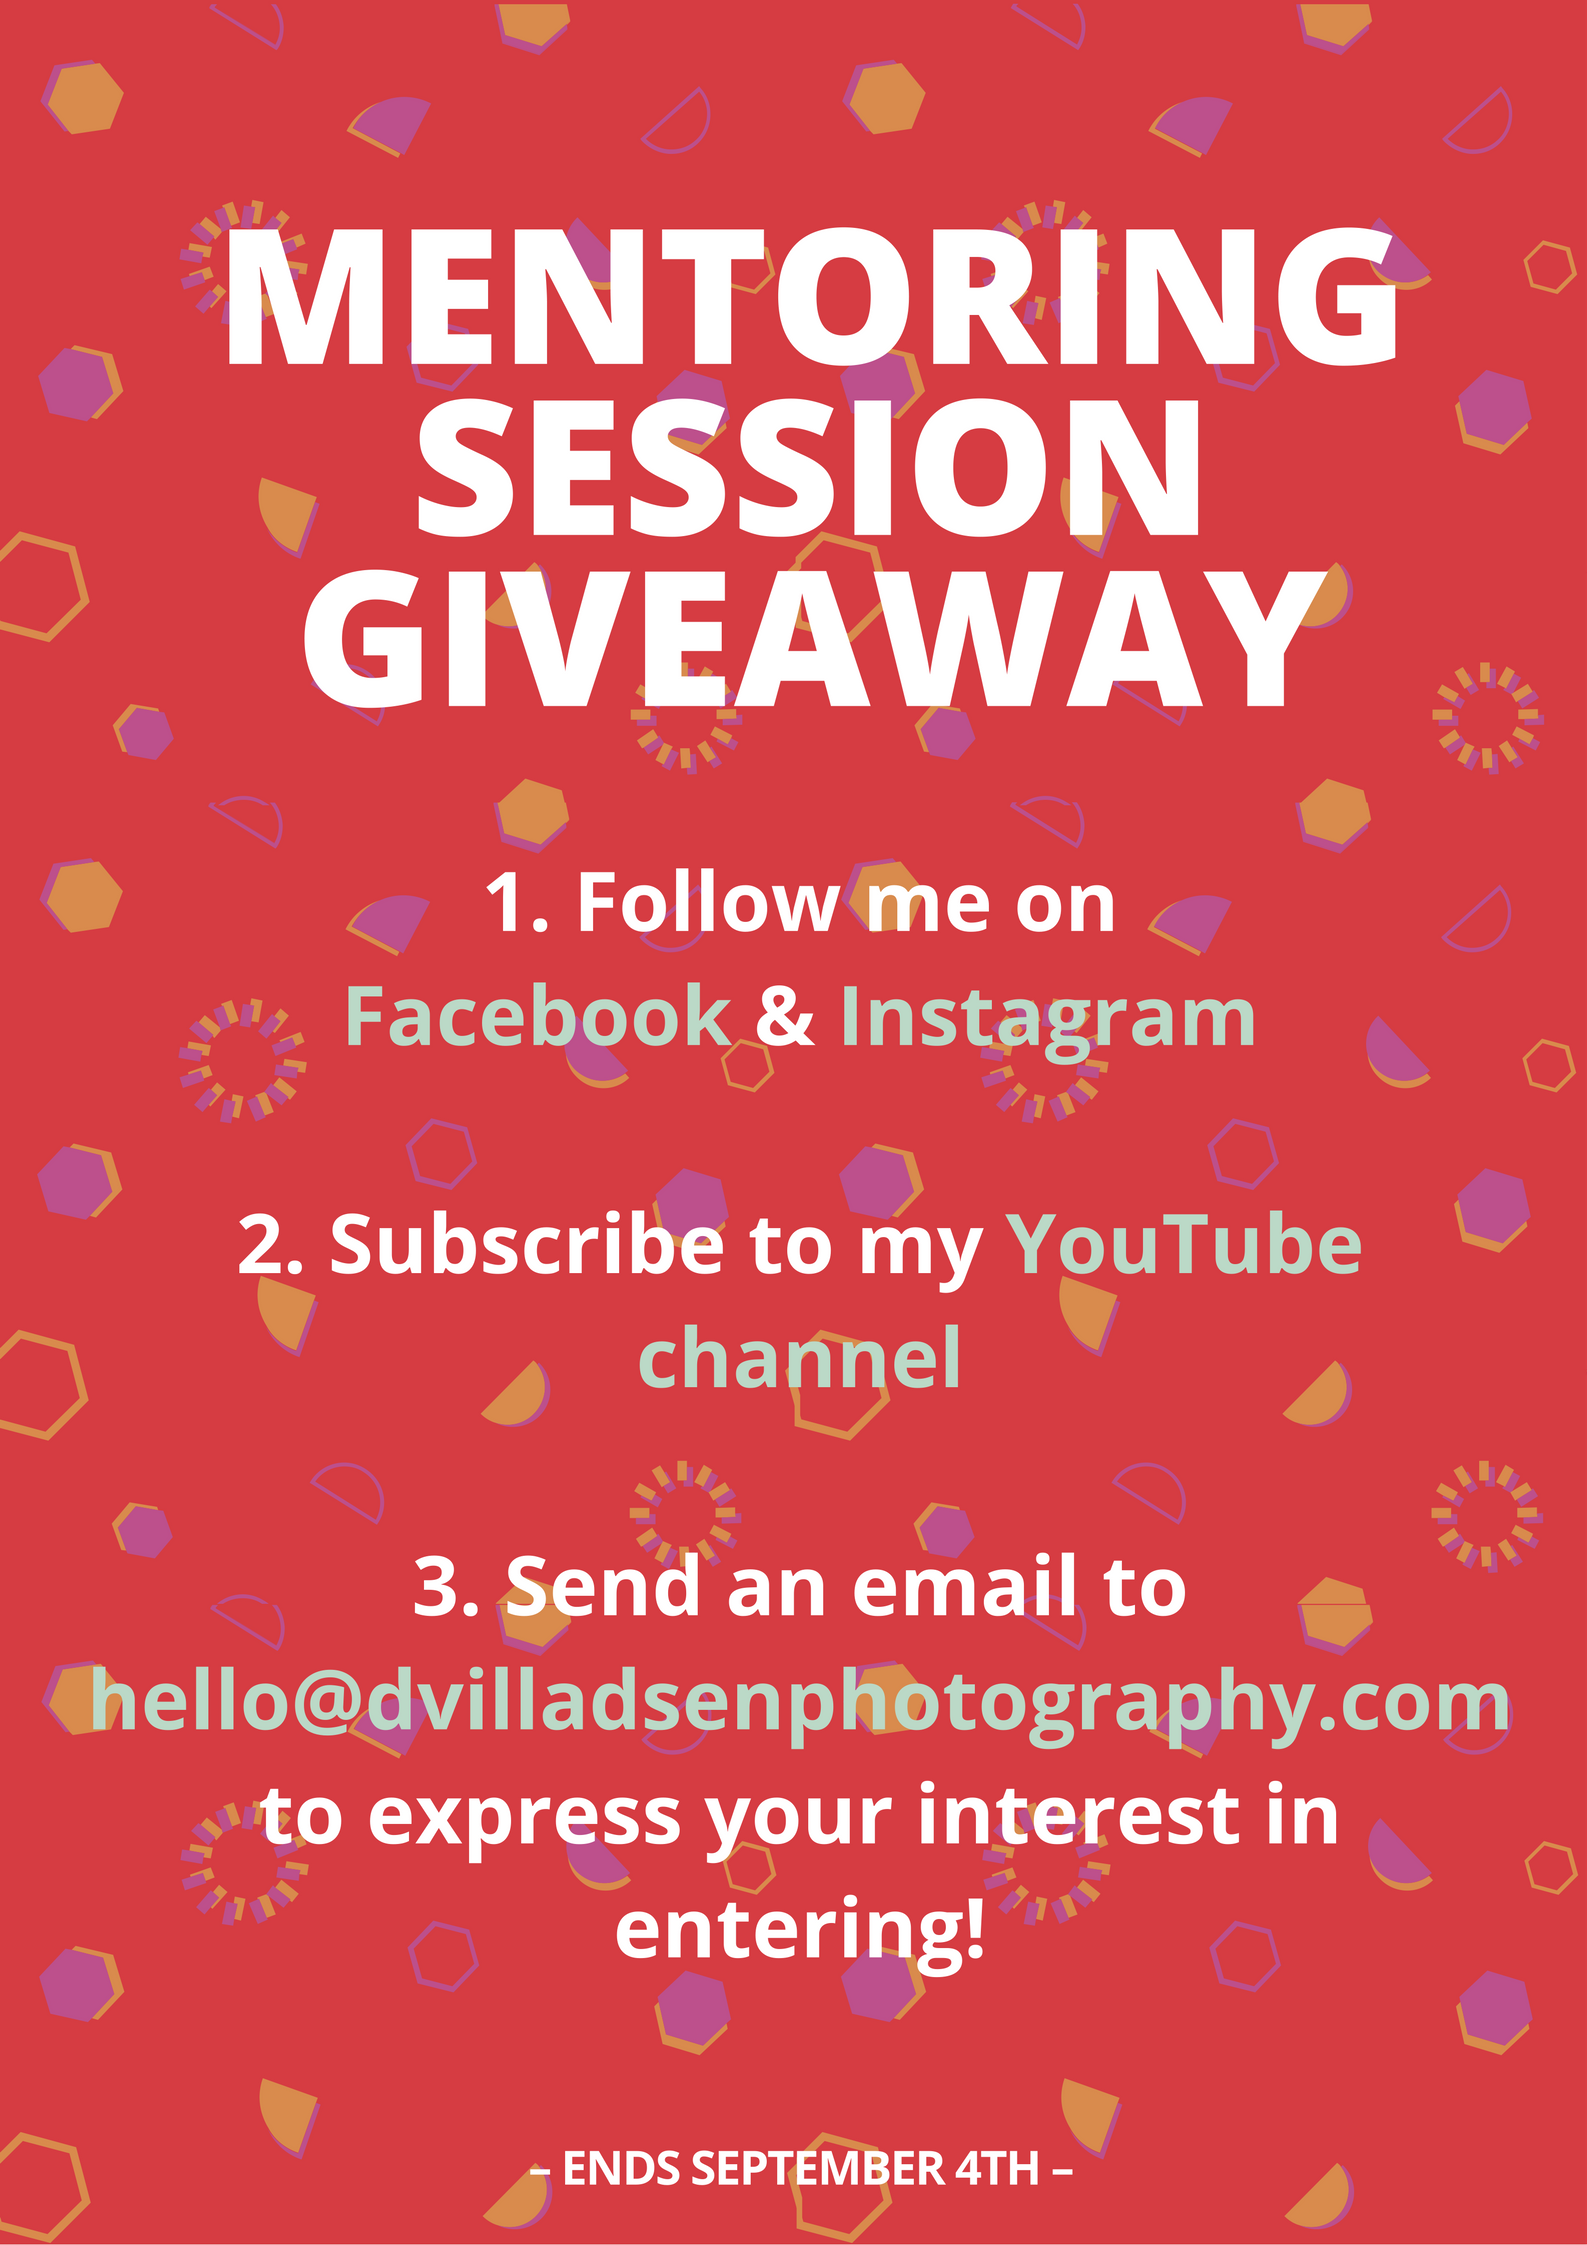 MENTORING SESSION GIVEAWAY